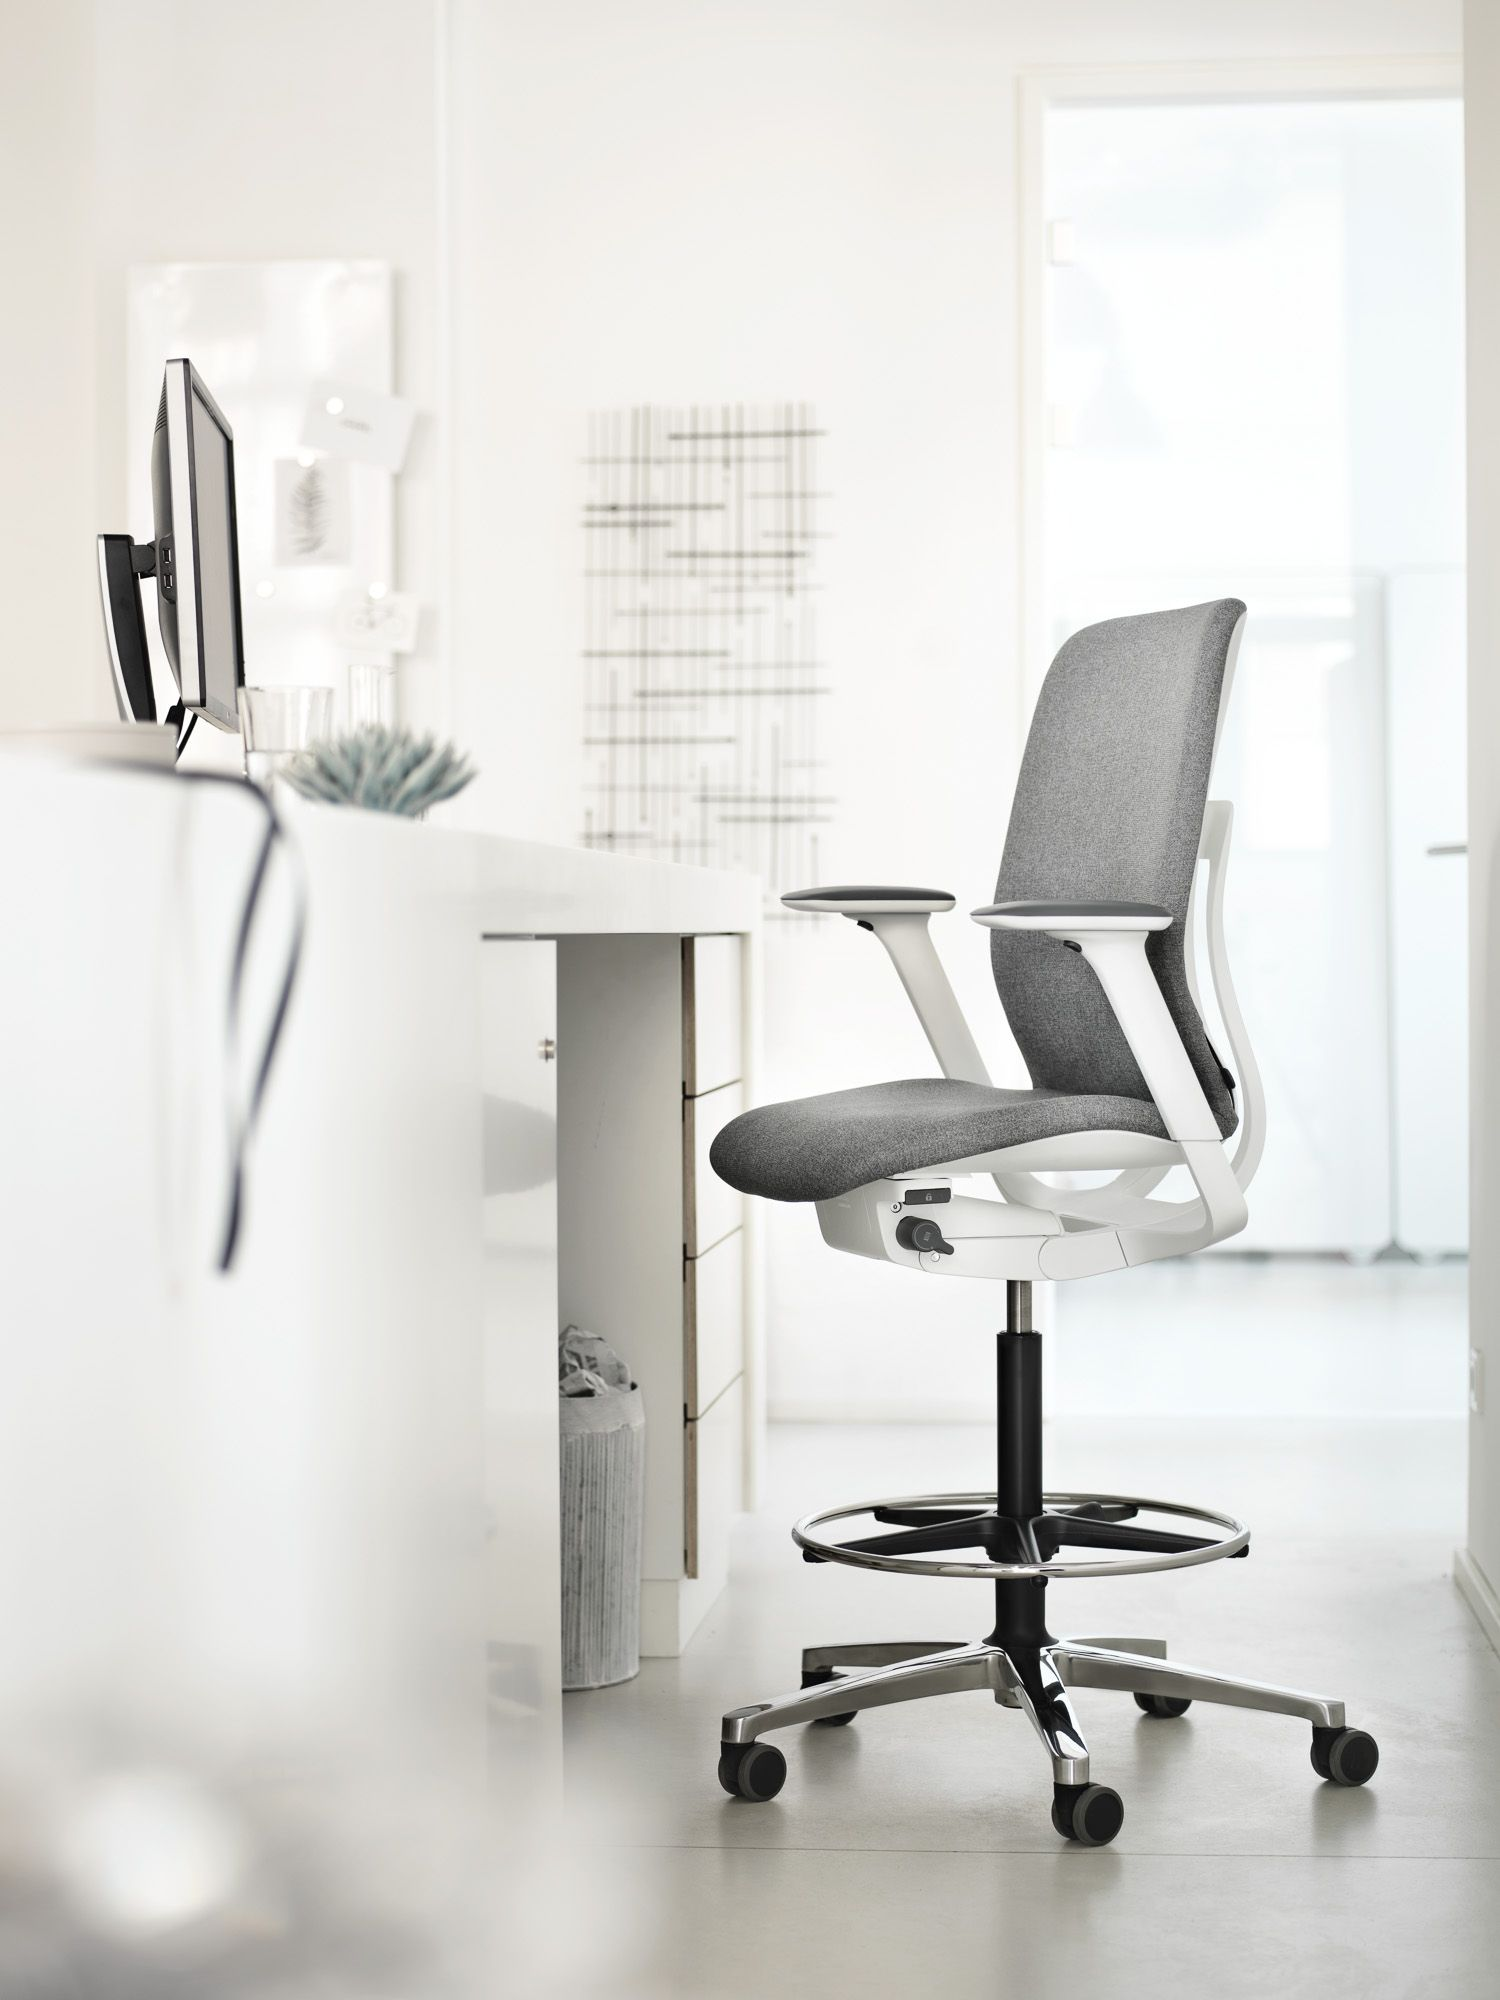 Our Height Adjustable Counter Stools Aren T Just Used At Counters But Also At High Tables In Modern P Task Chair Design Chair Design Modular Furniture System